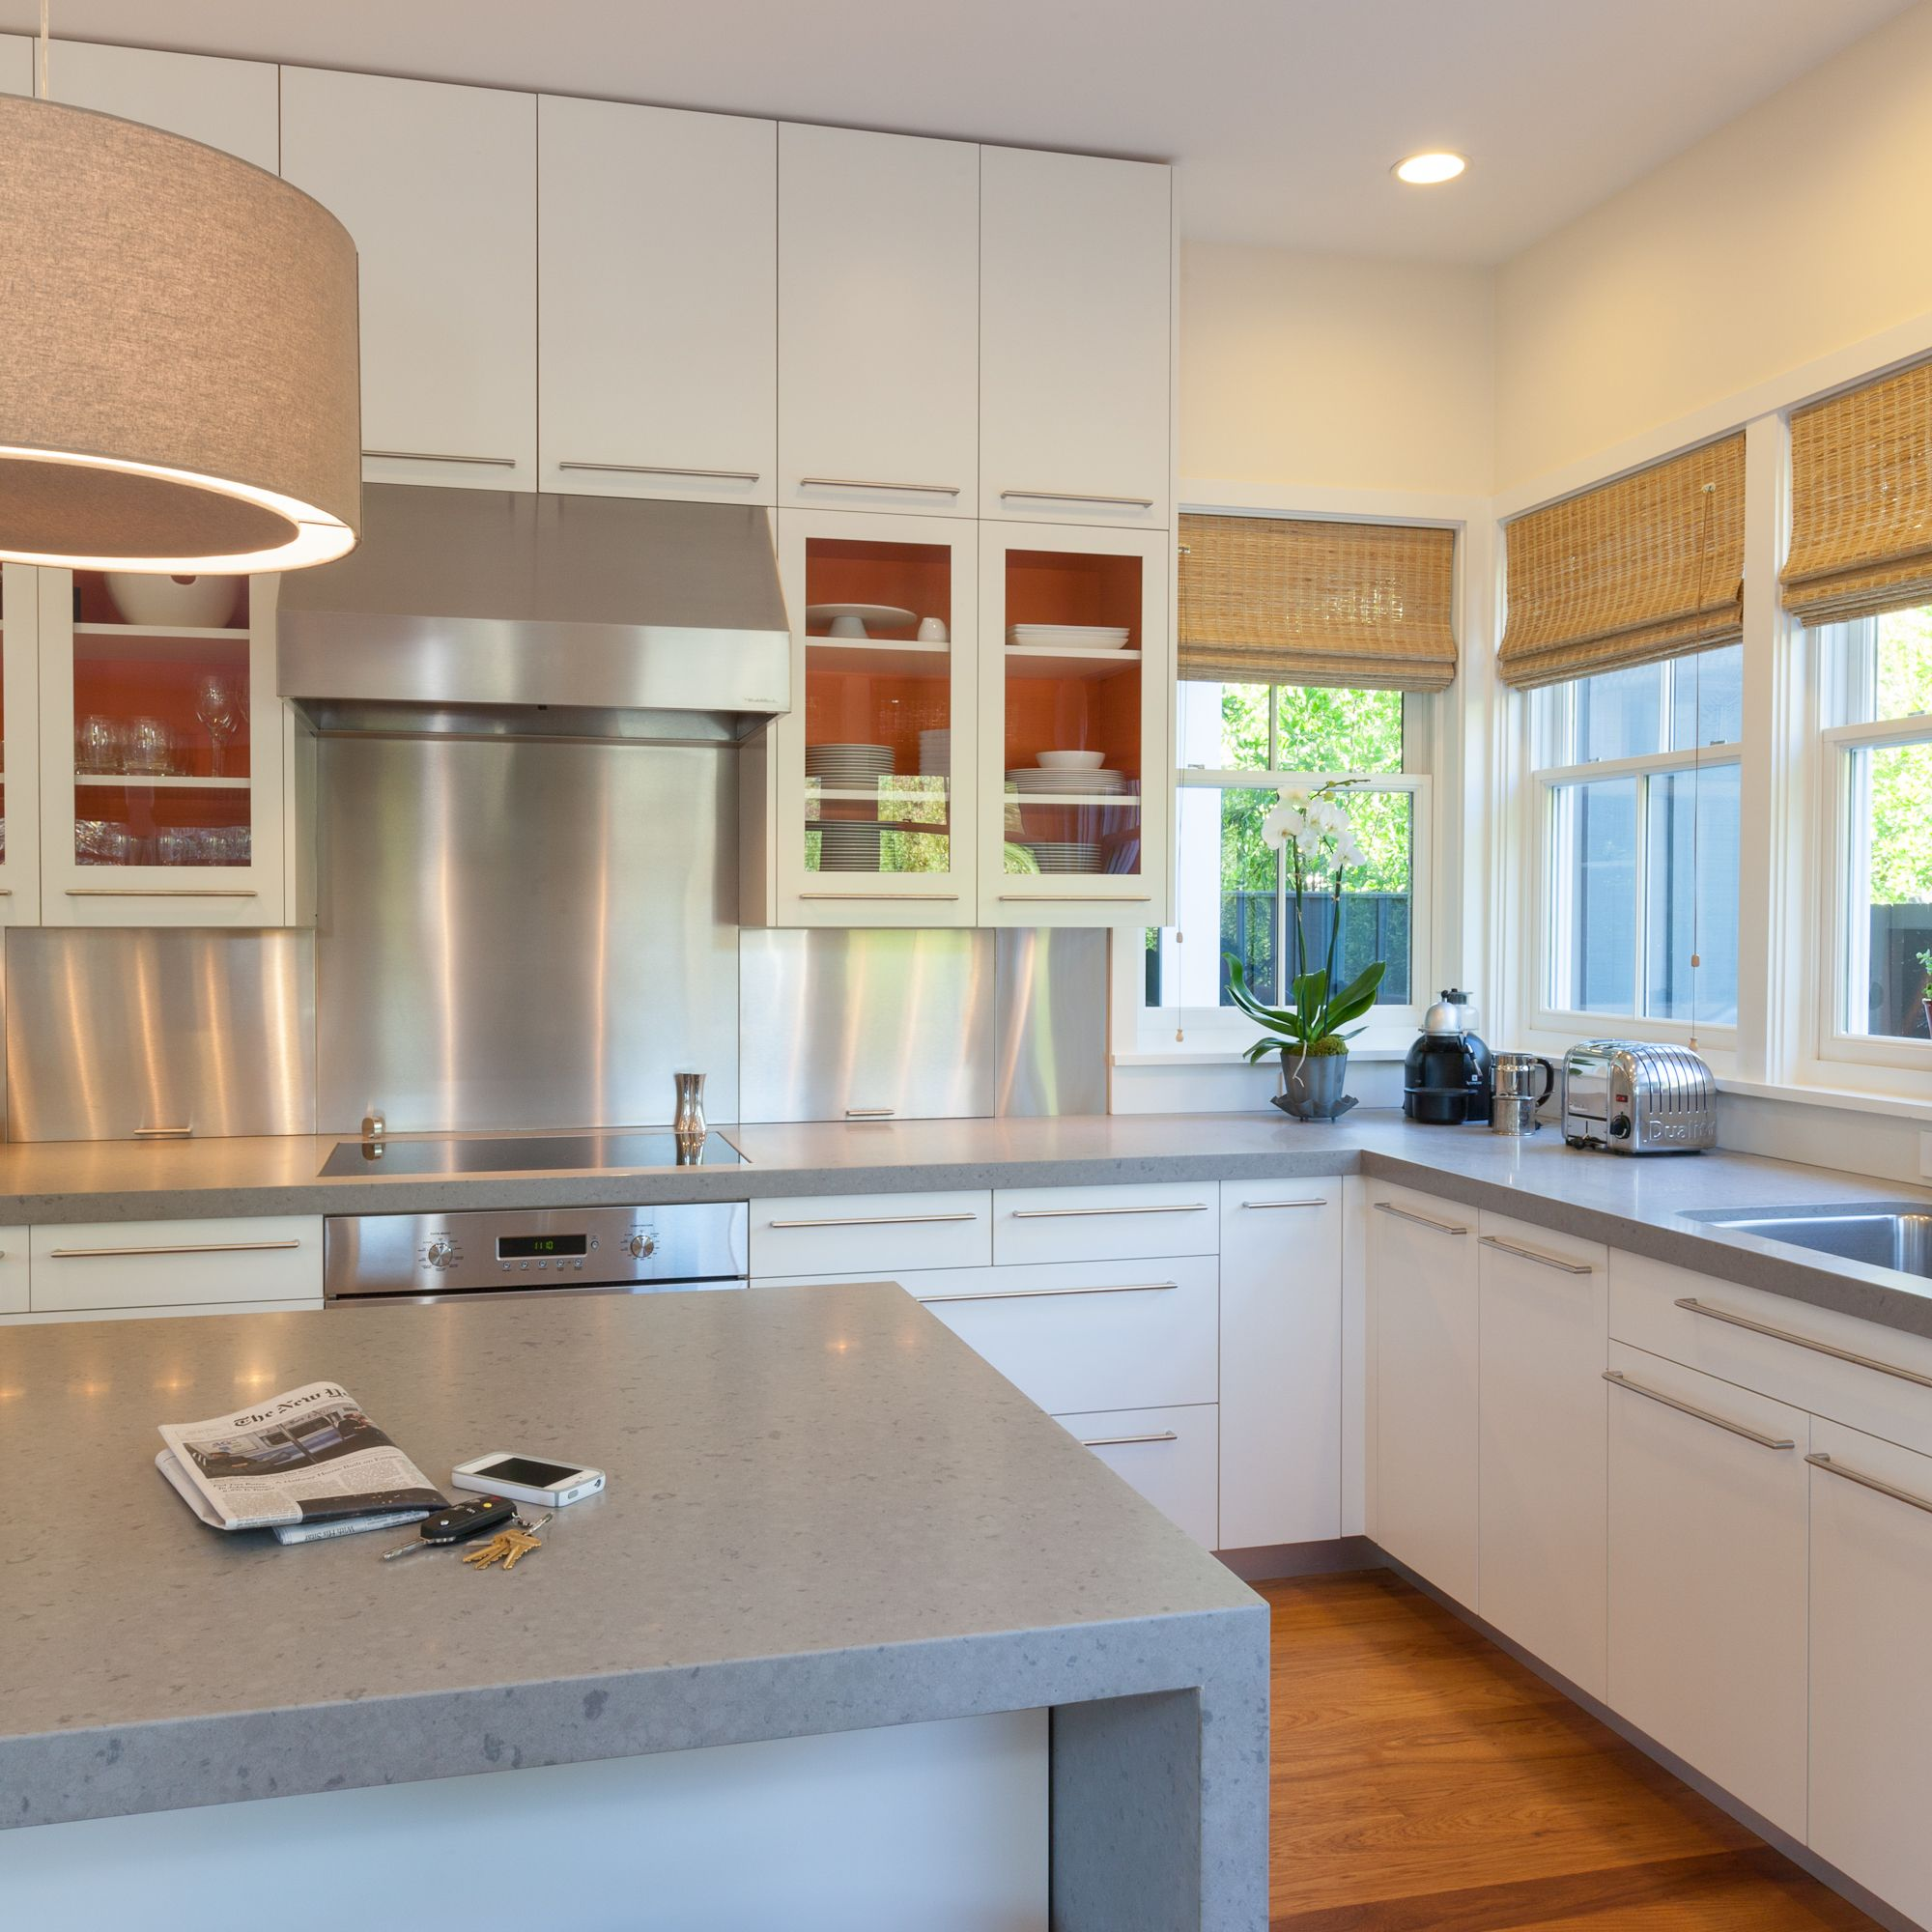 Flat Front Kitchen Cabinets Modern To The Core From The Frameless Flat Fronted Cabinets To